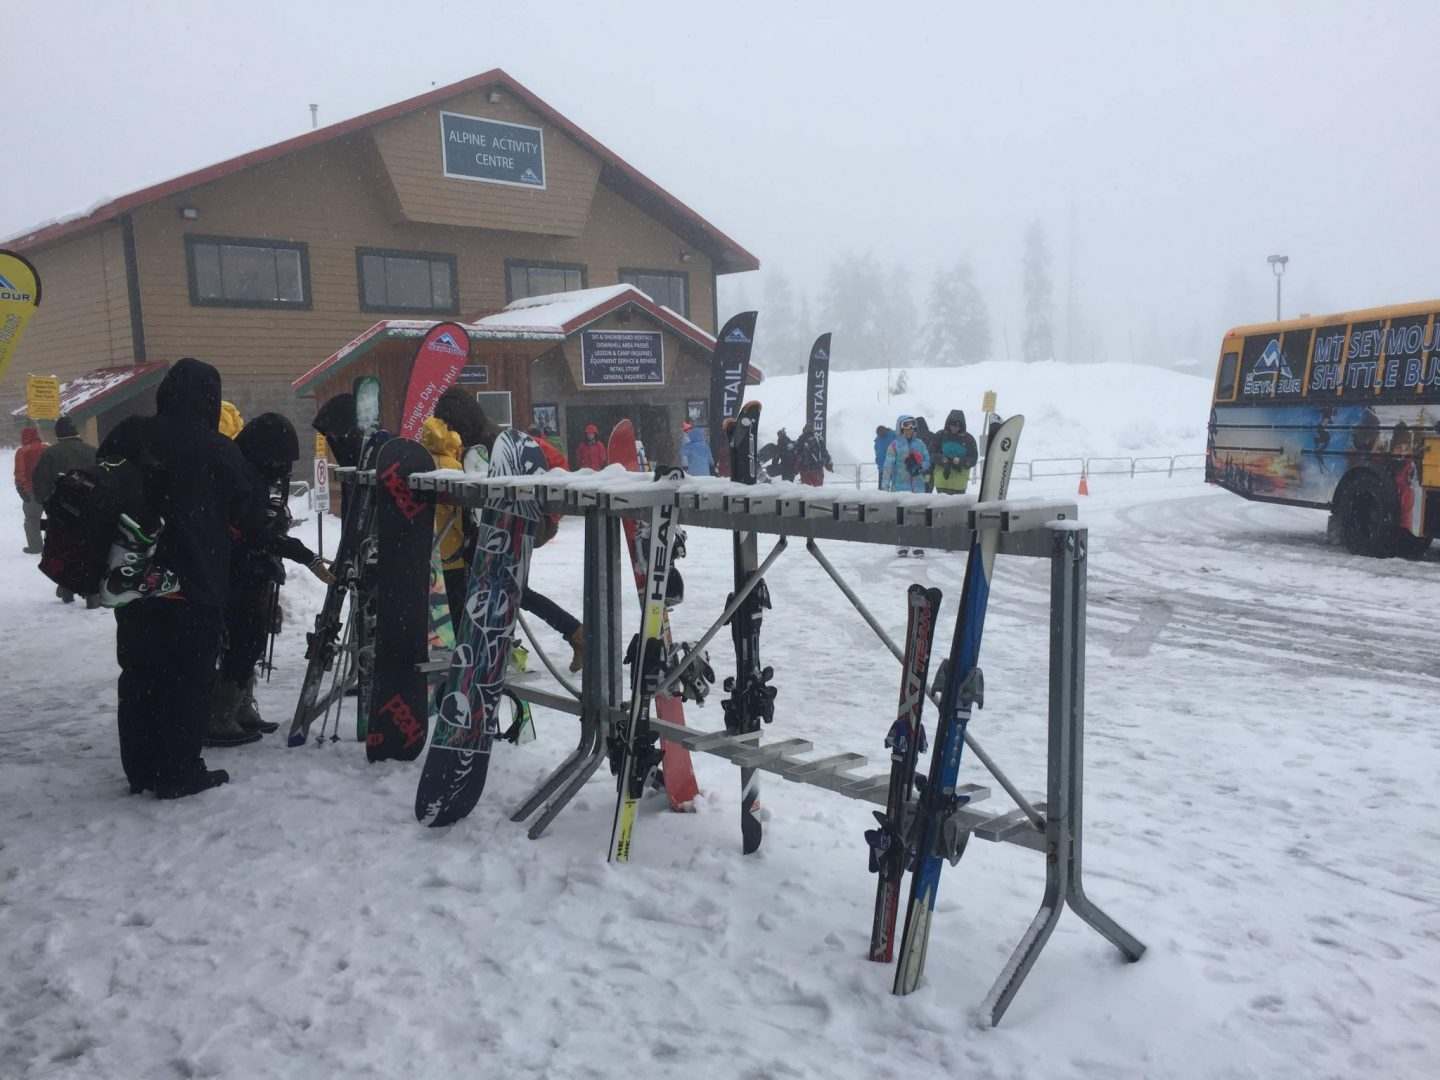 Racks of skis outside the lodge in Vancouver, BC